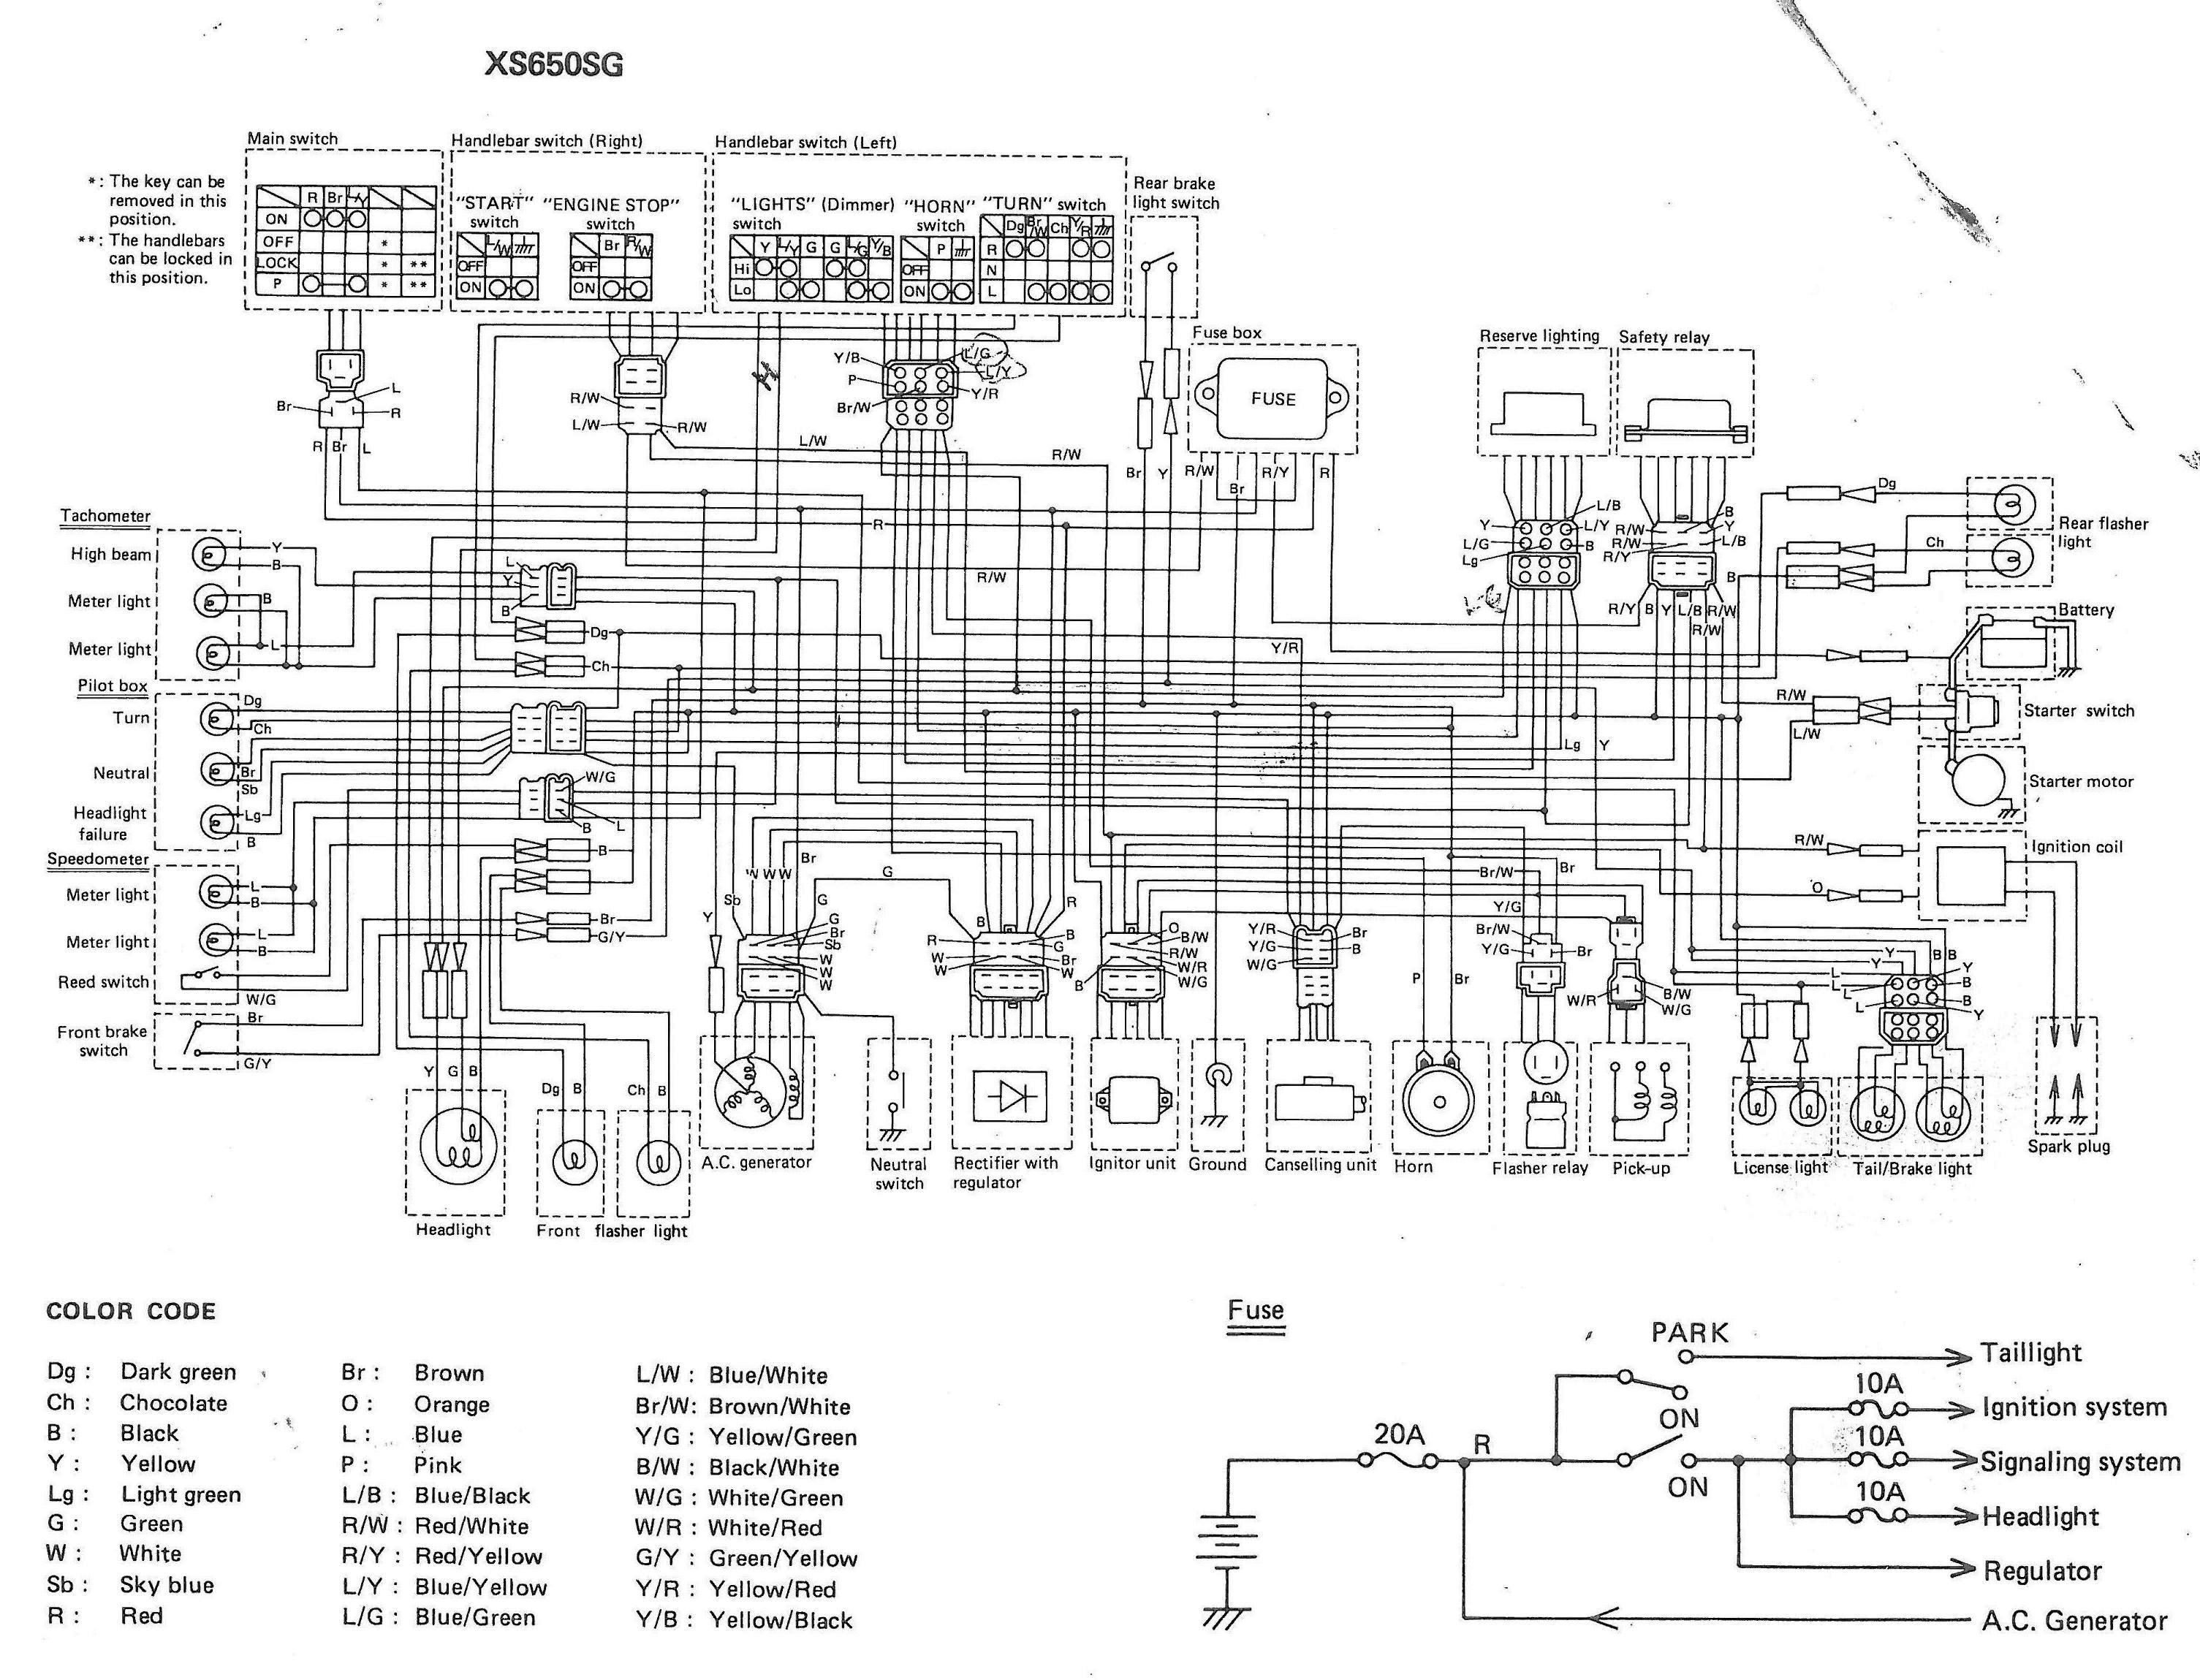 80 xs650sg 1 elec diagram thexscafe 1980 xs650 wiring diagram at bayanpartner.co